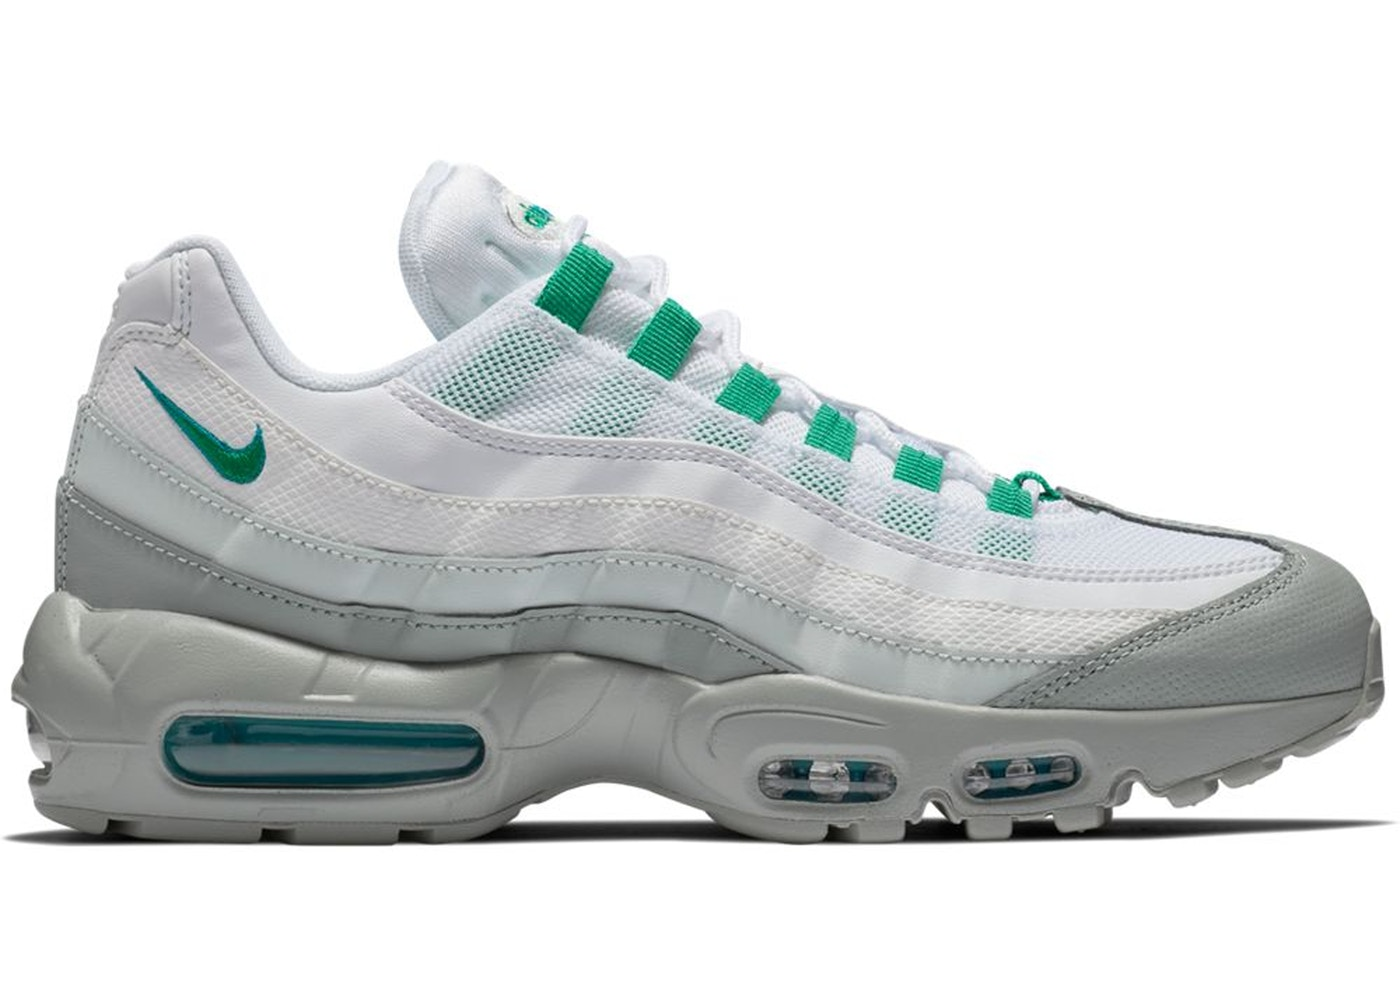 wholesale dealer 73187 d3c4d Buy Nike Air Max 95 Shoes & Deadstock Sneakers